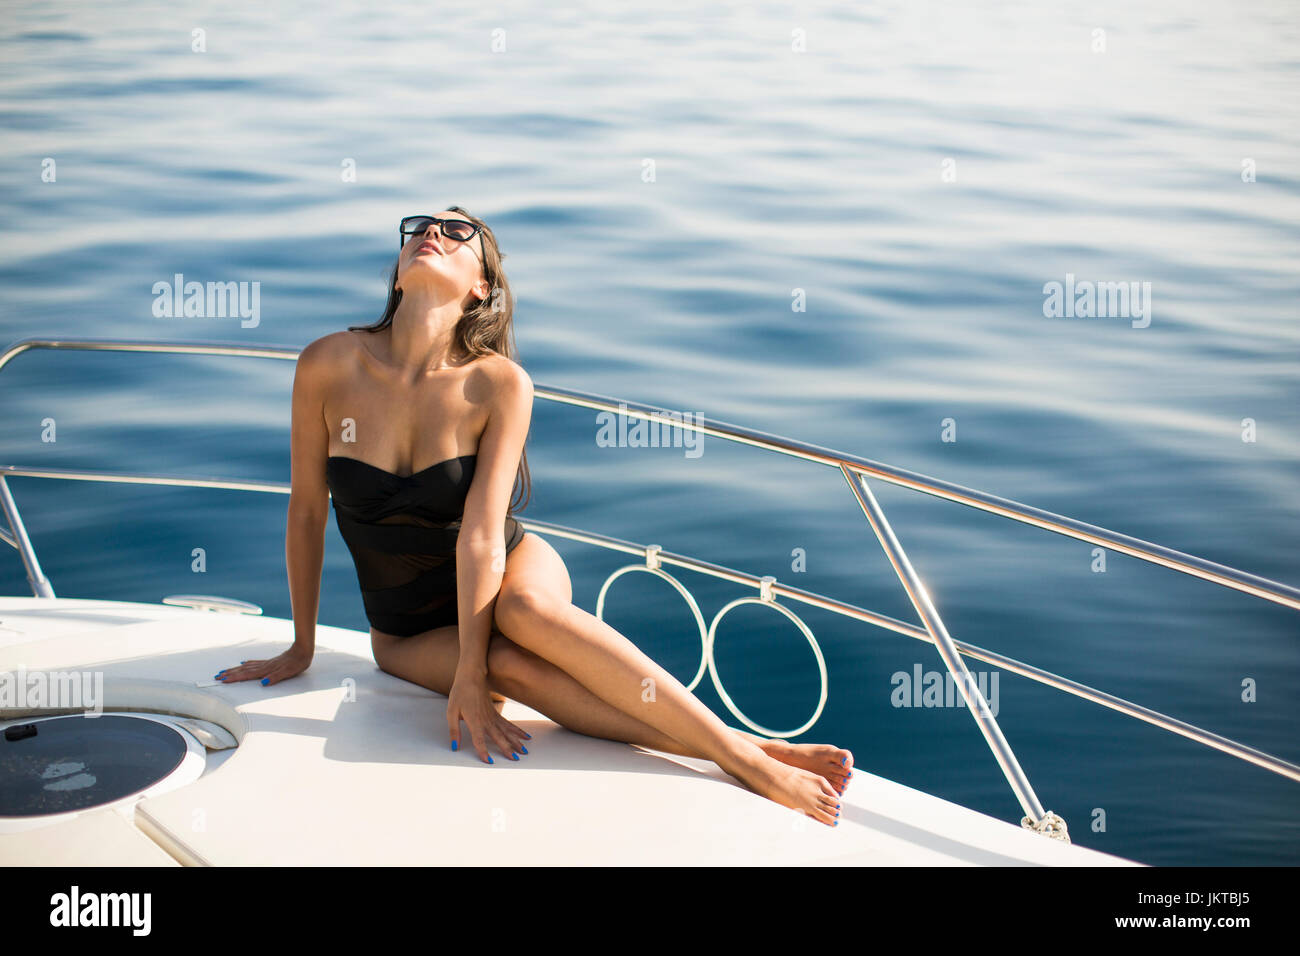 Pretty young woman relaxing on the yacht at sea - Stock Image